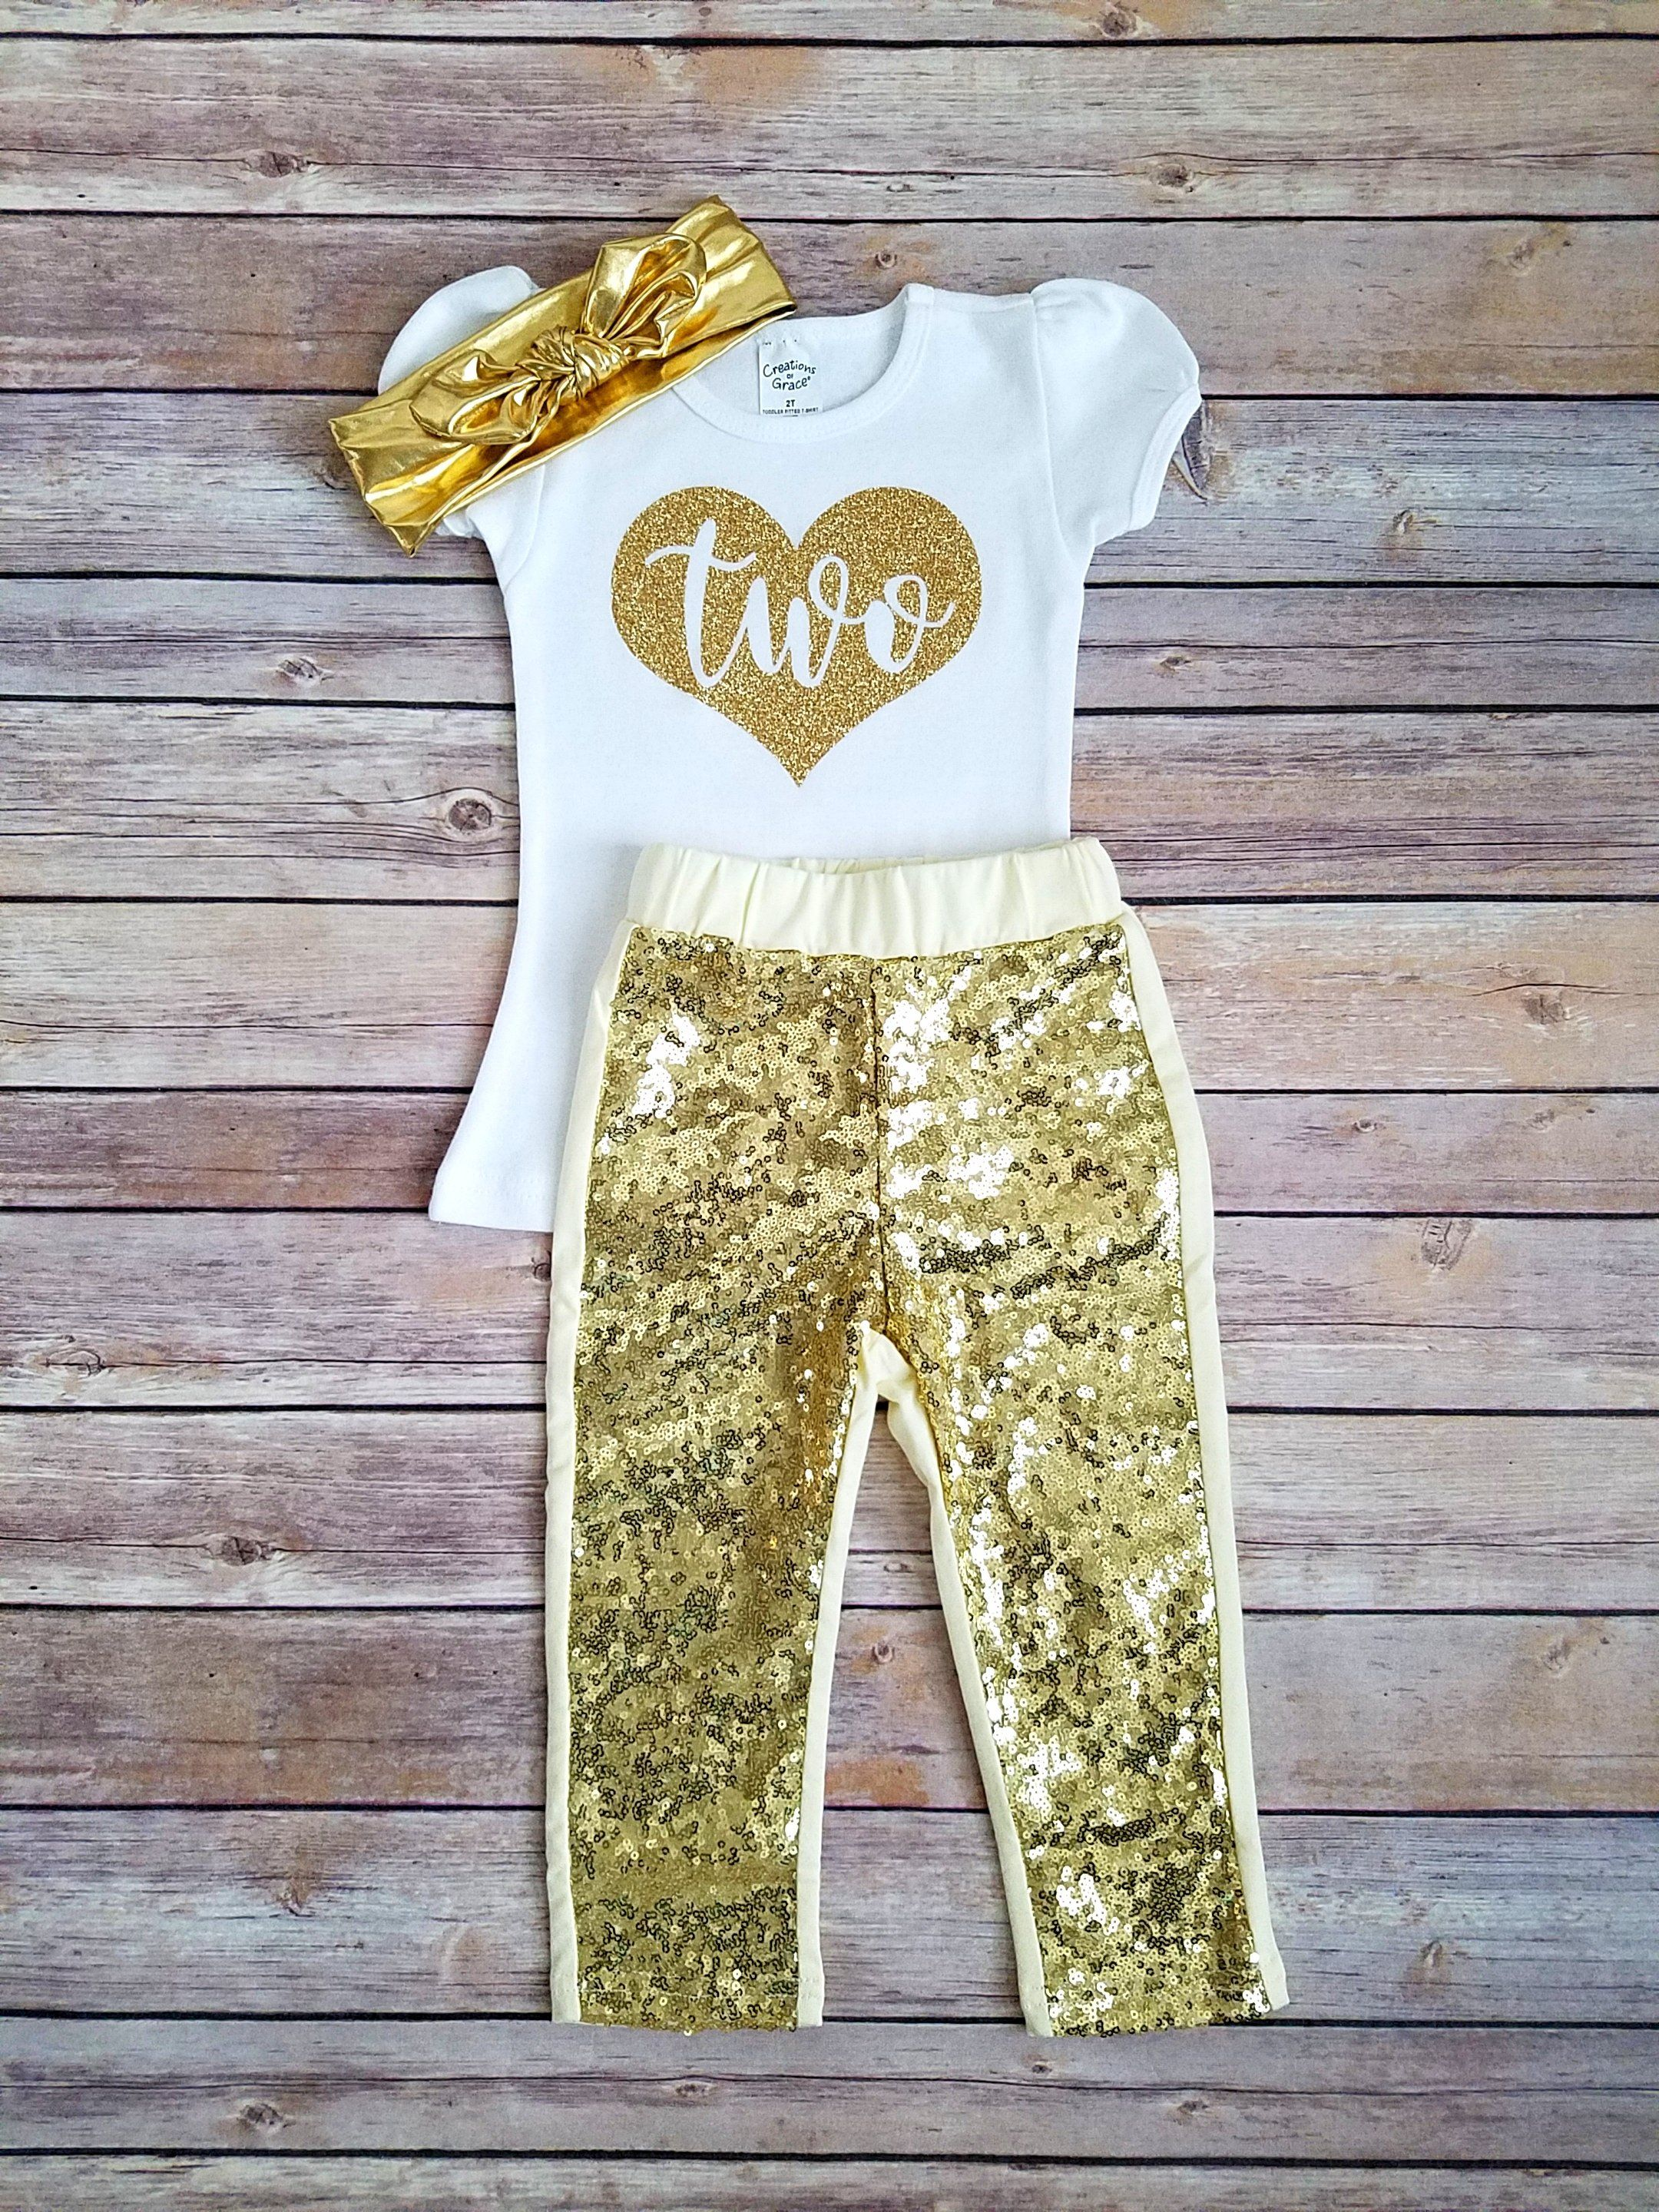 aaaf2bb79 Second Birthday Outfit Girl Gold 2nd Birthday Outfit   Products